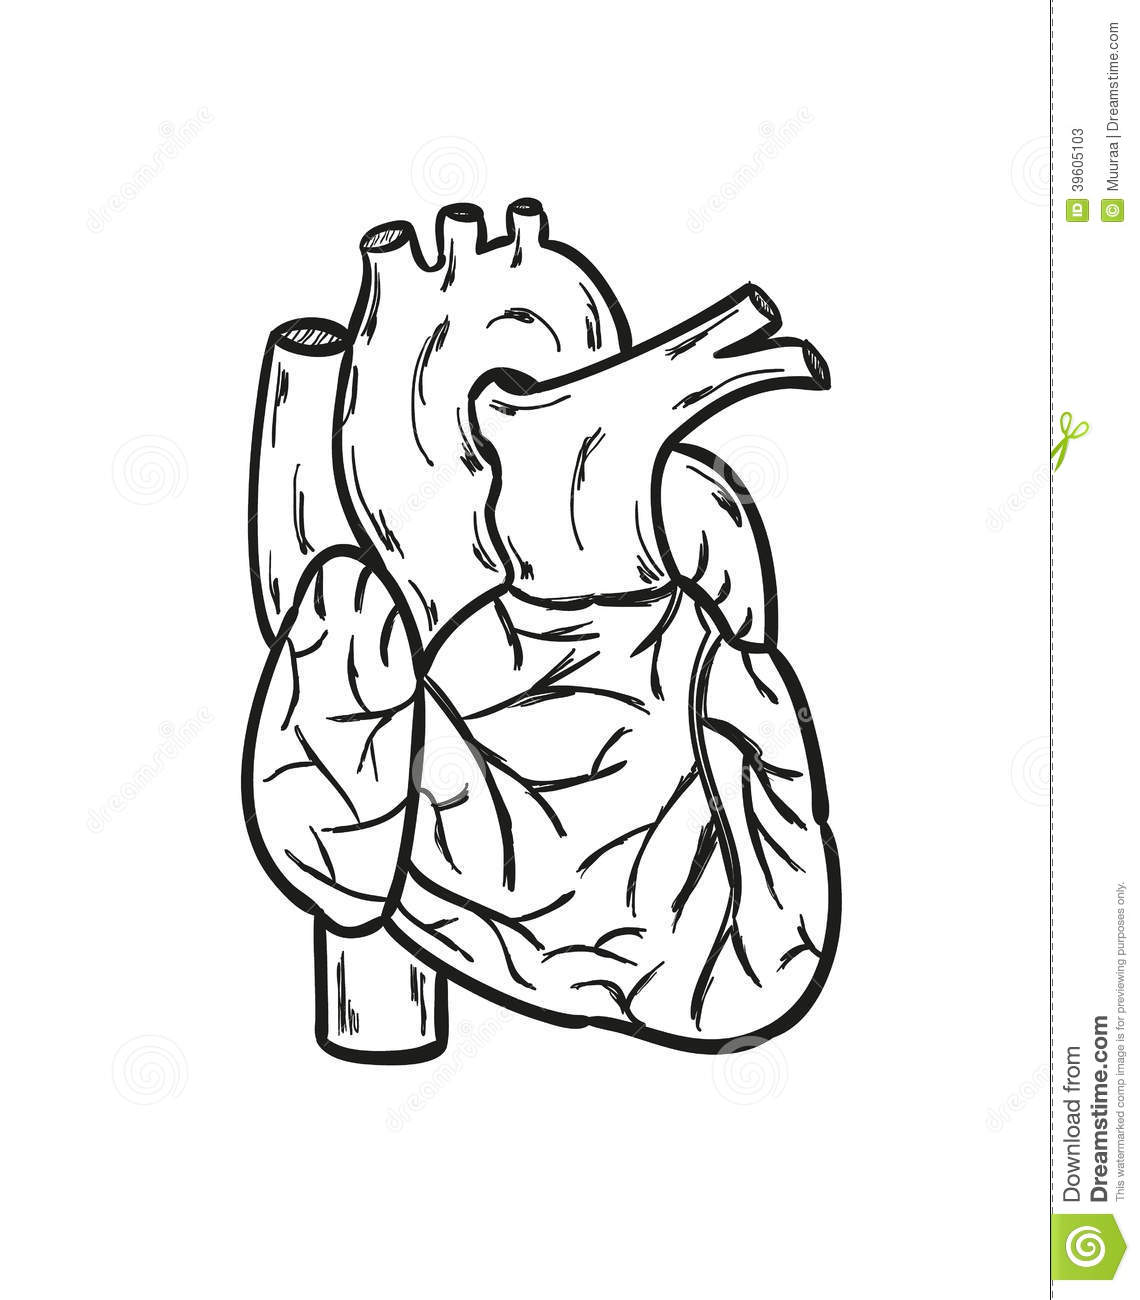 Holiday Coloring Pages Human Heart Coloring Page Free